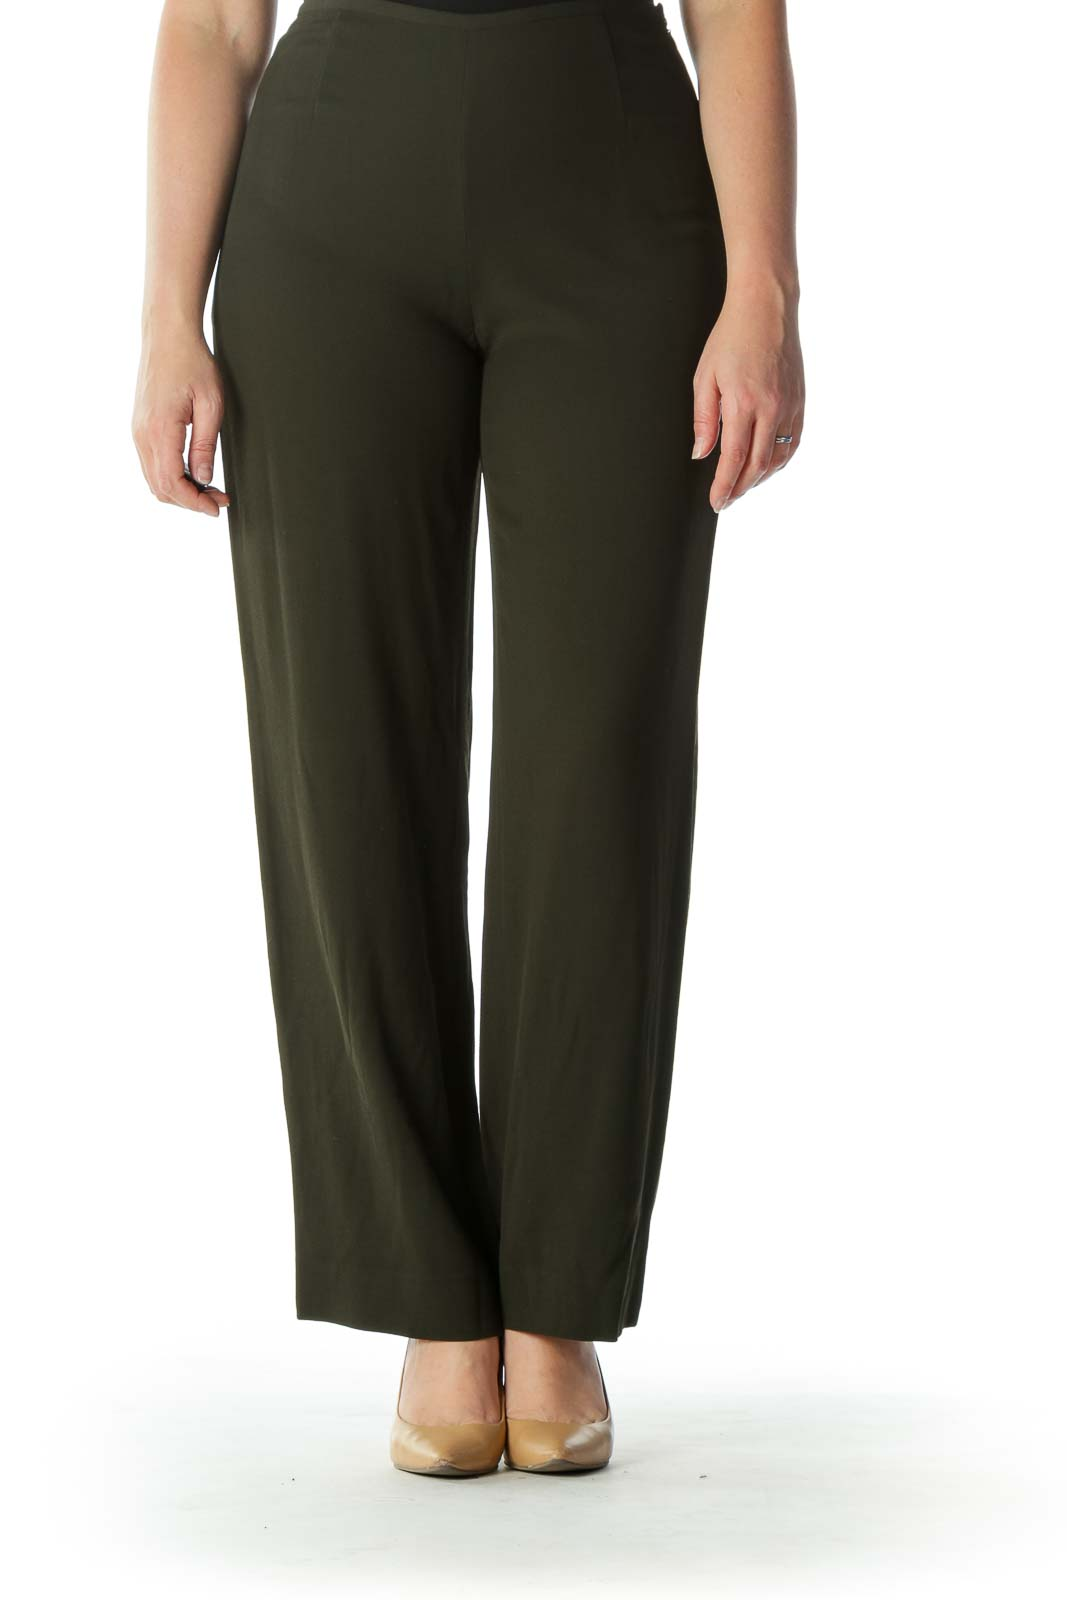 Army Green High-Waisted Designer Pant